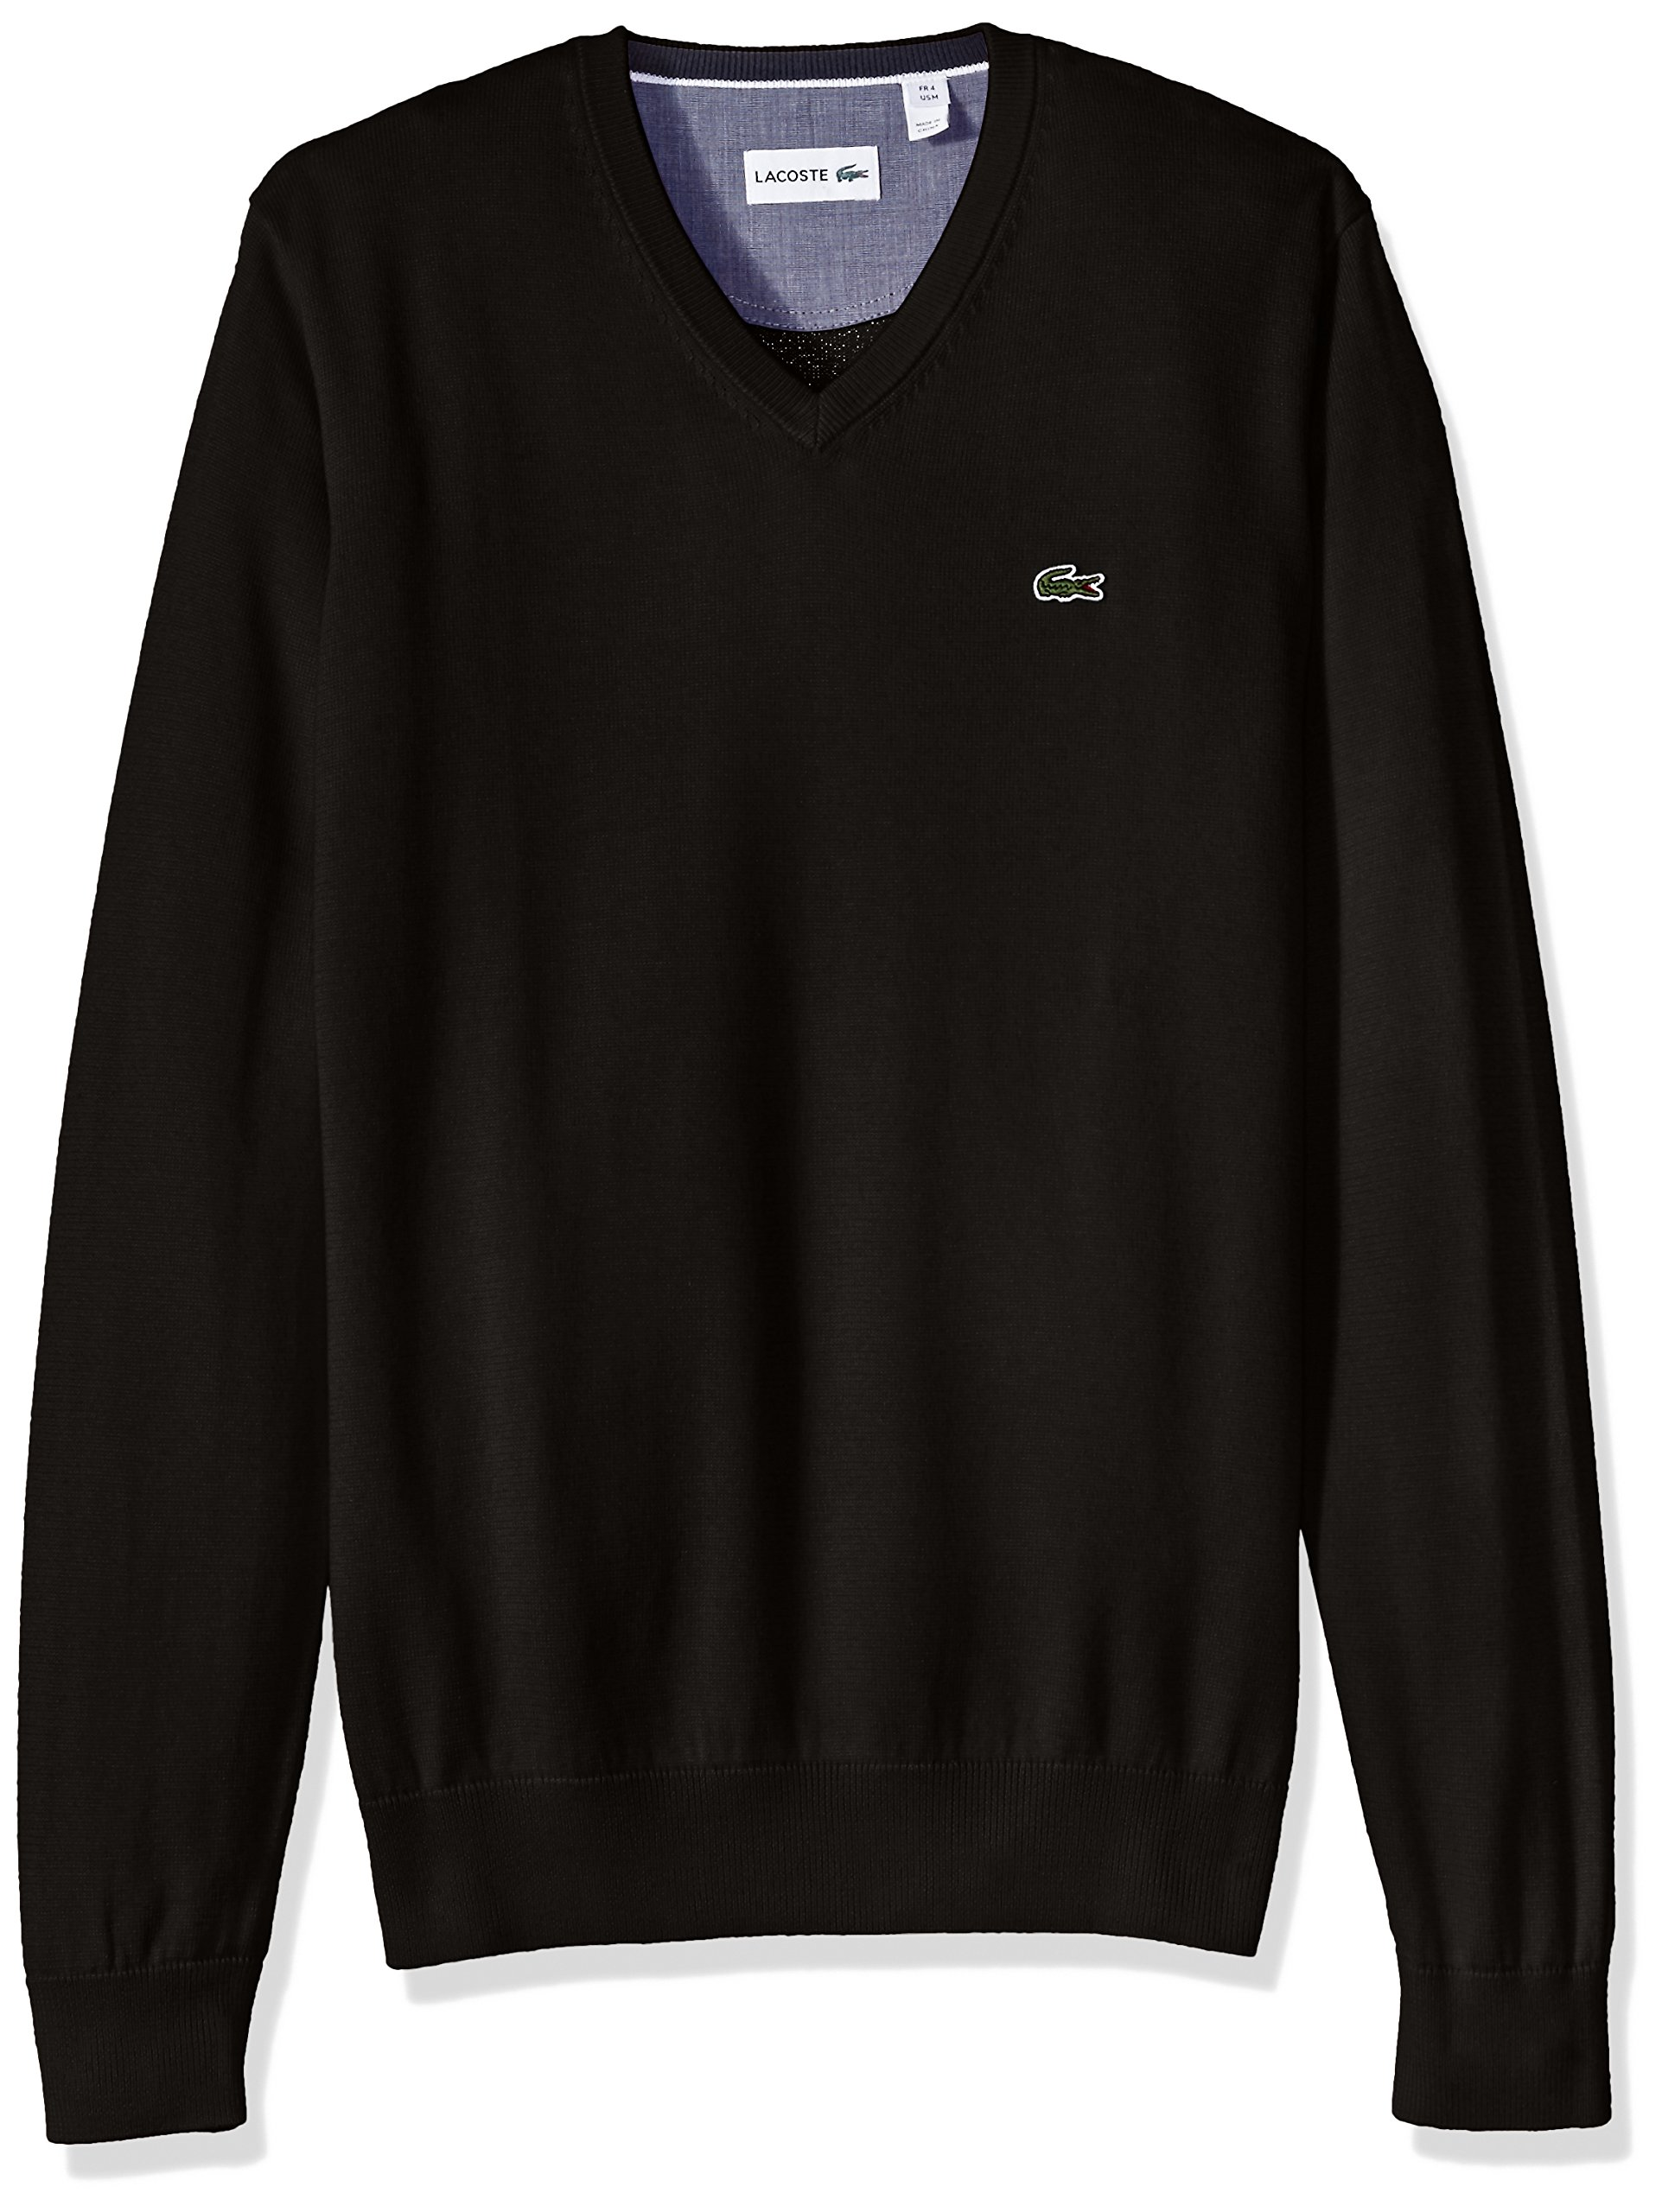 Lacoste Men's Cotton Jersey V-Neck Sweater, AH0347-51, Black, Small by Lacoste